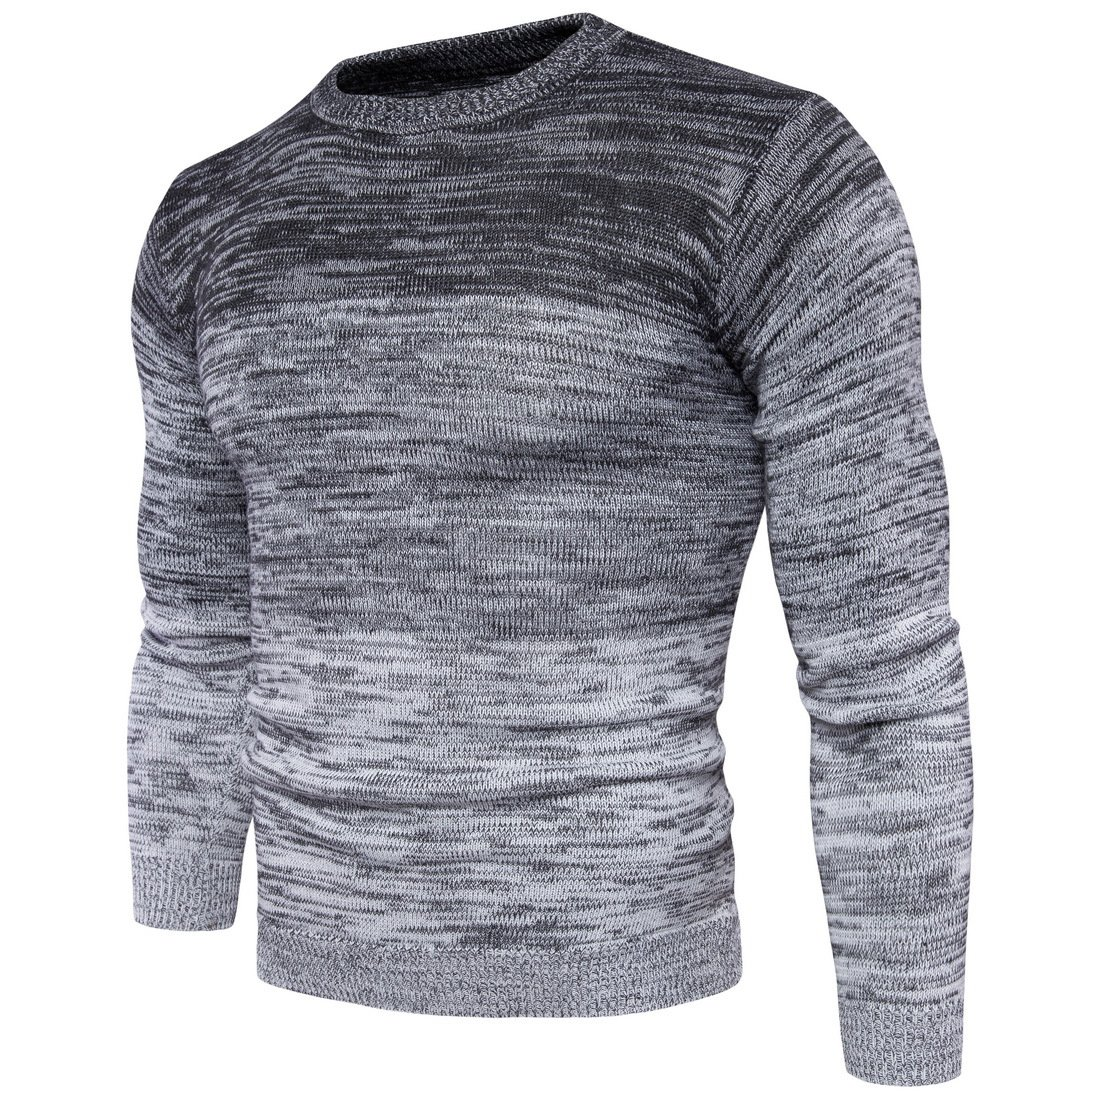 Siundddkw Winter Mens Boys Fine Novelty Long Sleeve Stylish Stripe Knitted Pullover Slim Jumper Knitwear Blouse (grey, M)